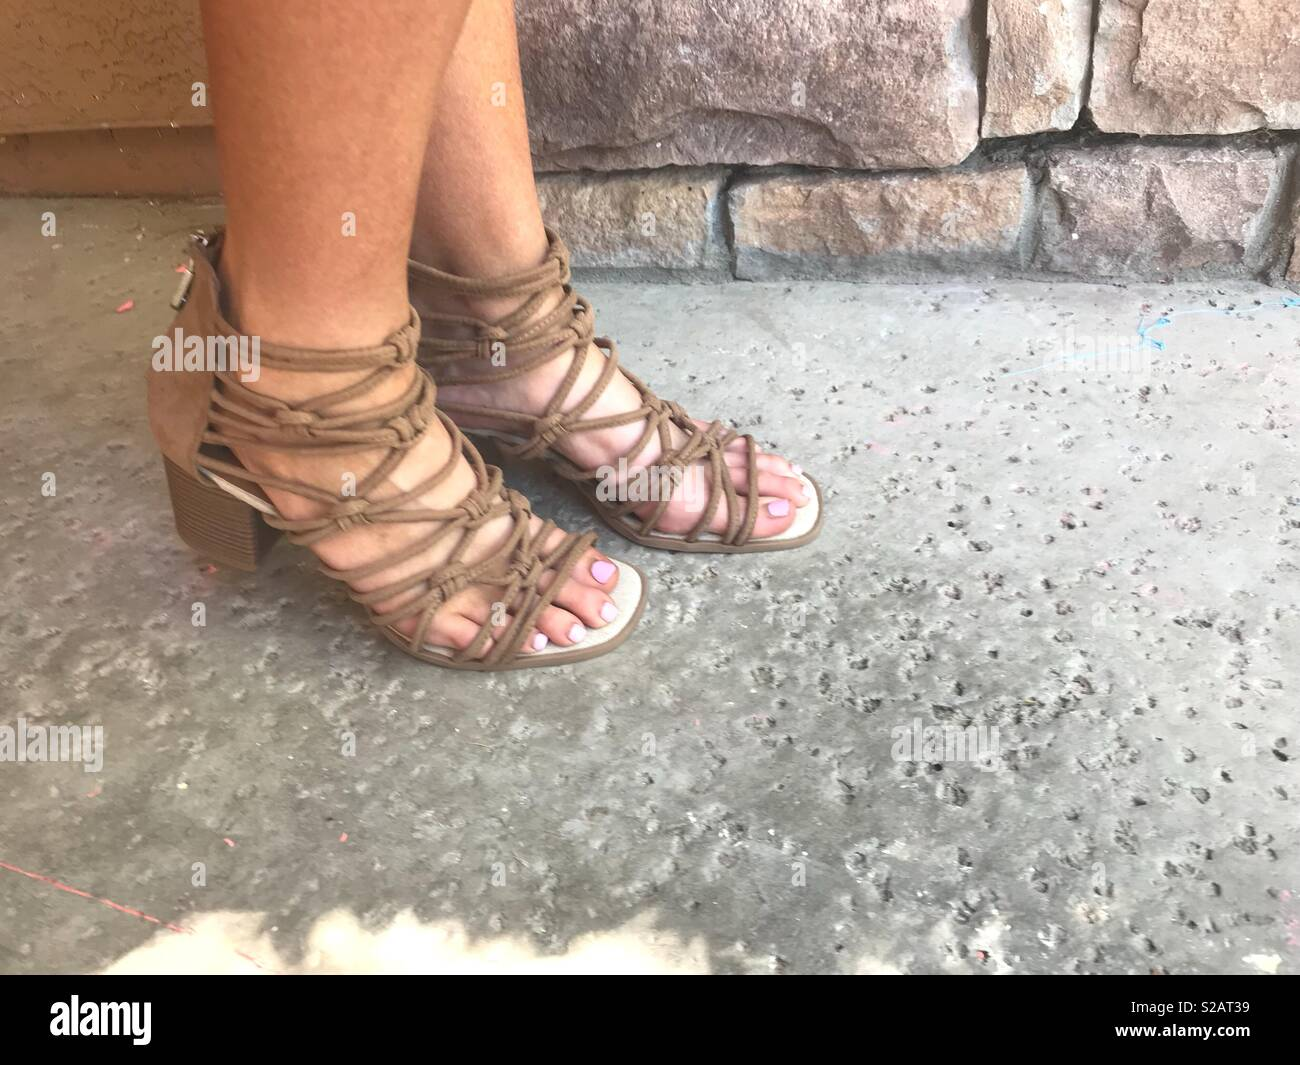 2255f77b88962 Natural sunlight shining on a woman s feet while wearing strappy gladiator sandals  with straps outside on